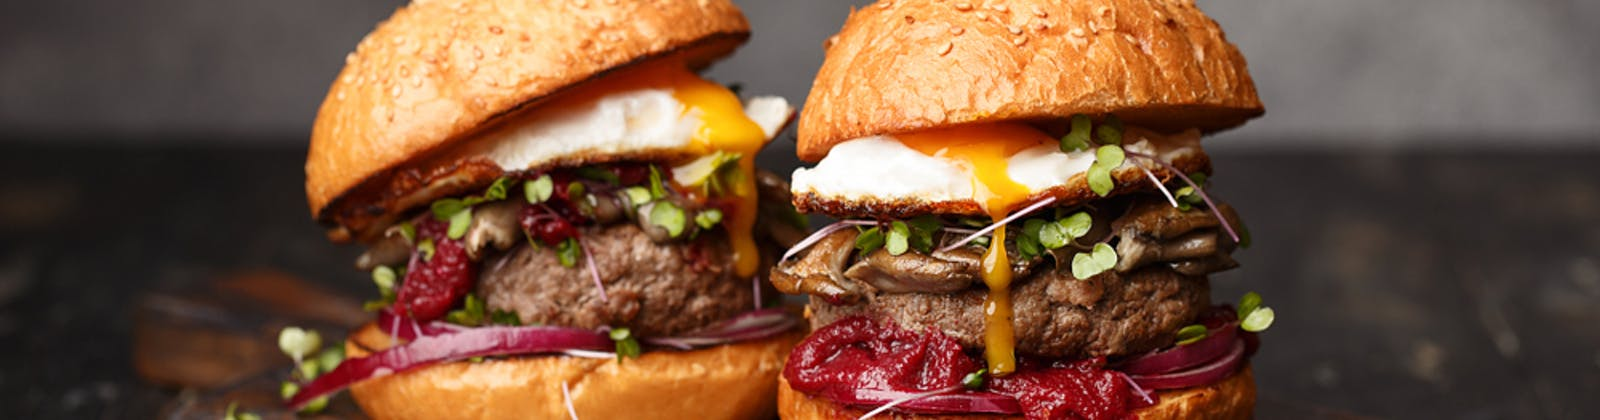 two beef burgers with egg and sauce